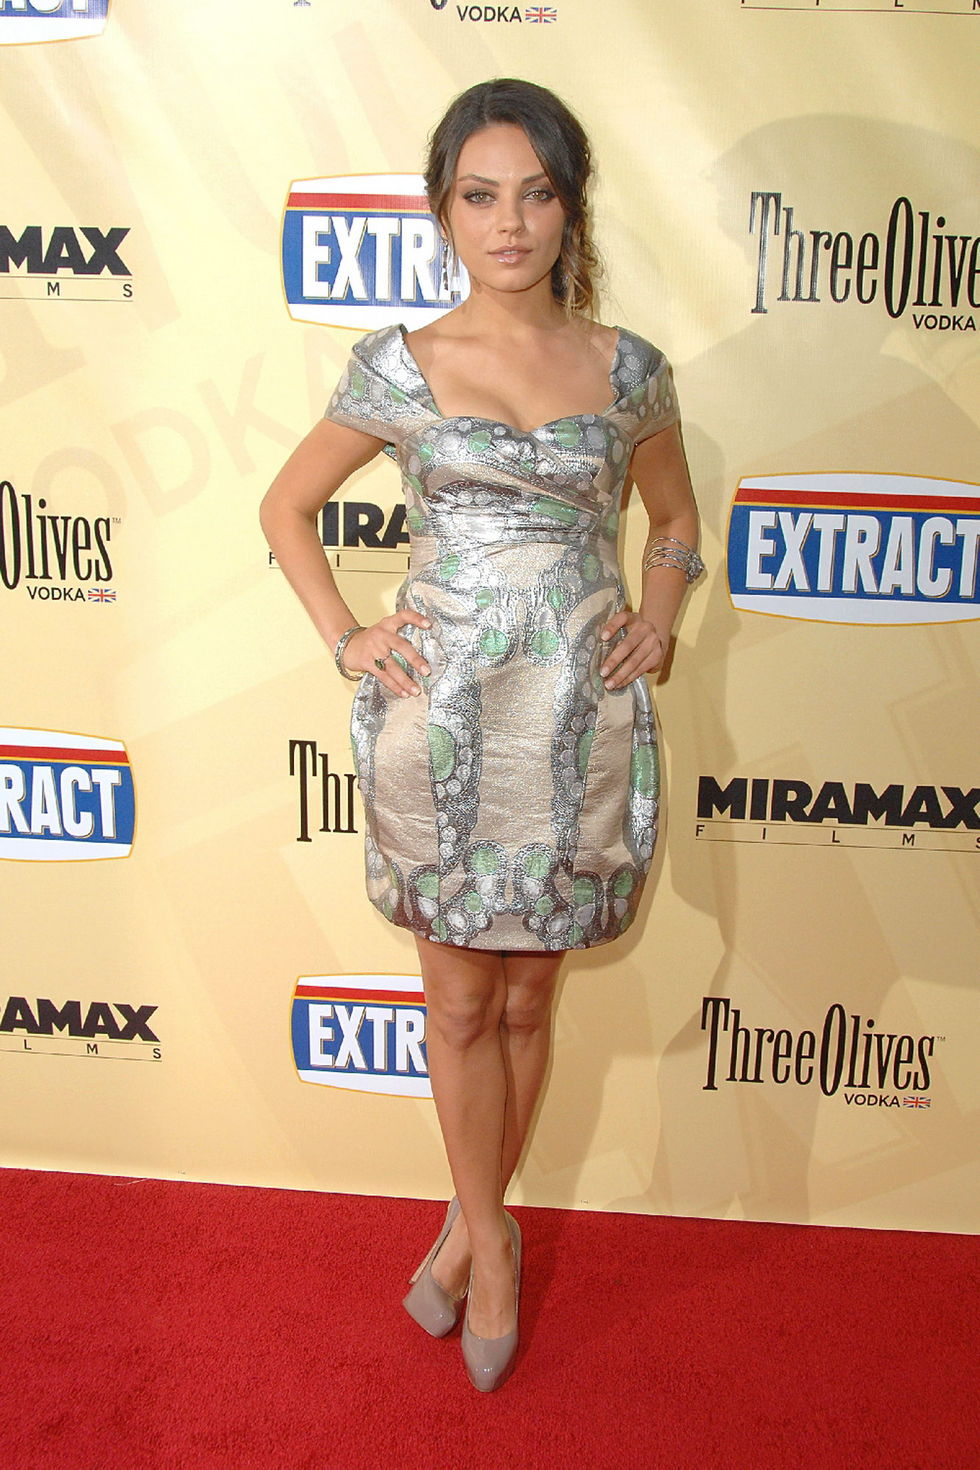 mila-kunis-extract-premiere-in-los-angeles-17